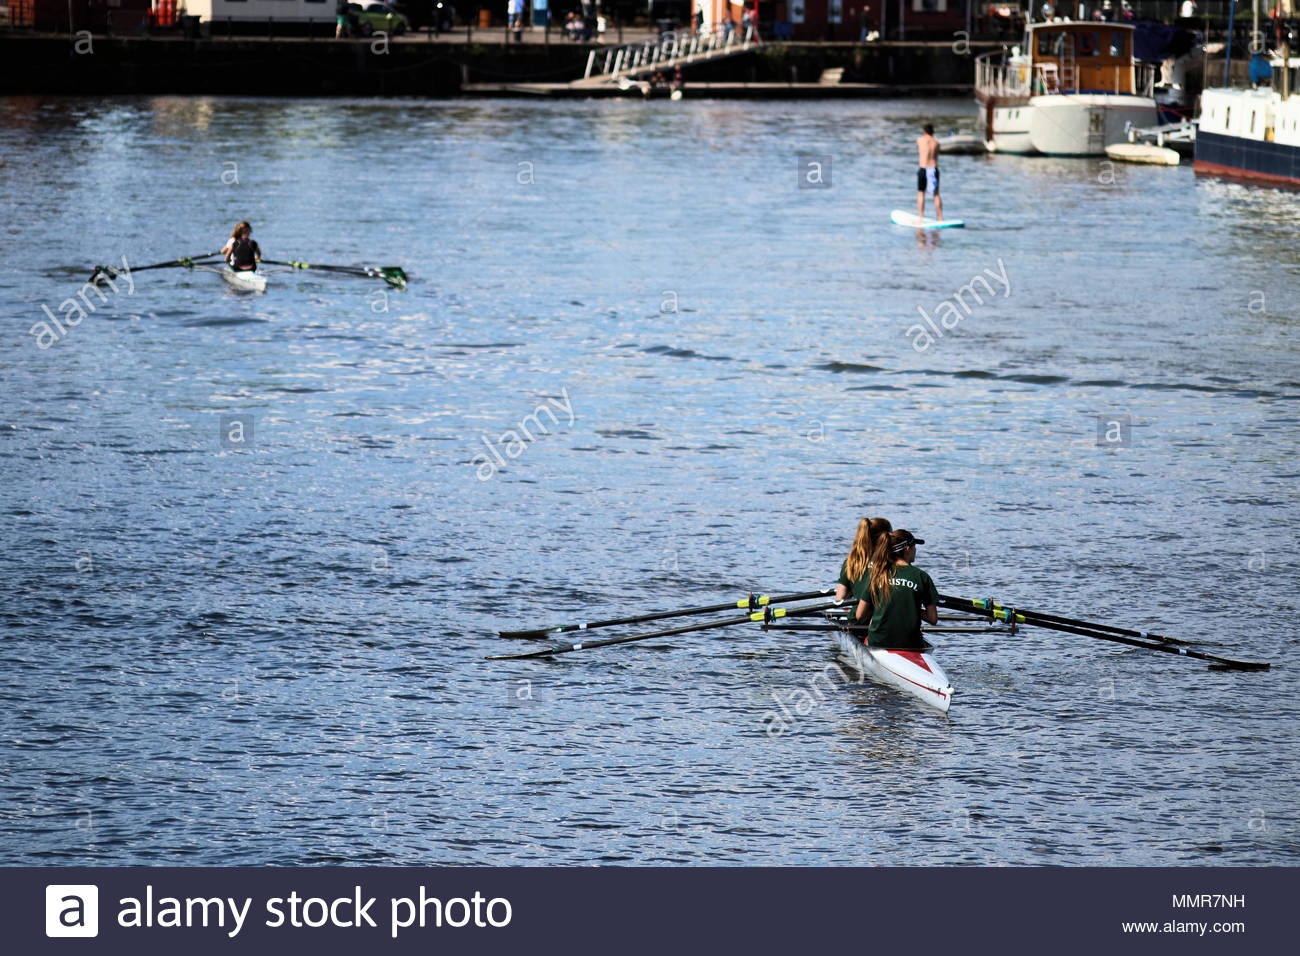 Two sets of Rowers in Bristols Floating Harbour, Bristol City Centre, UK - Stock Image